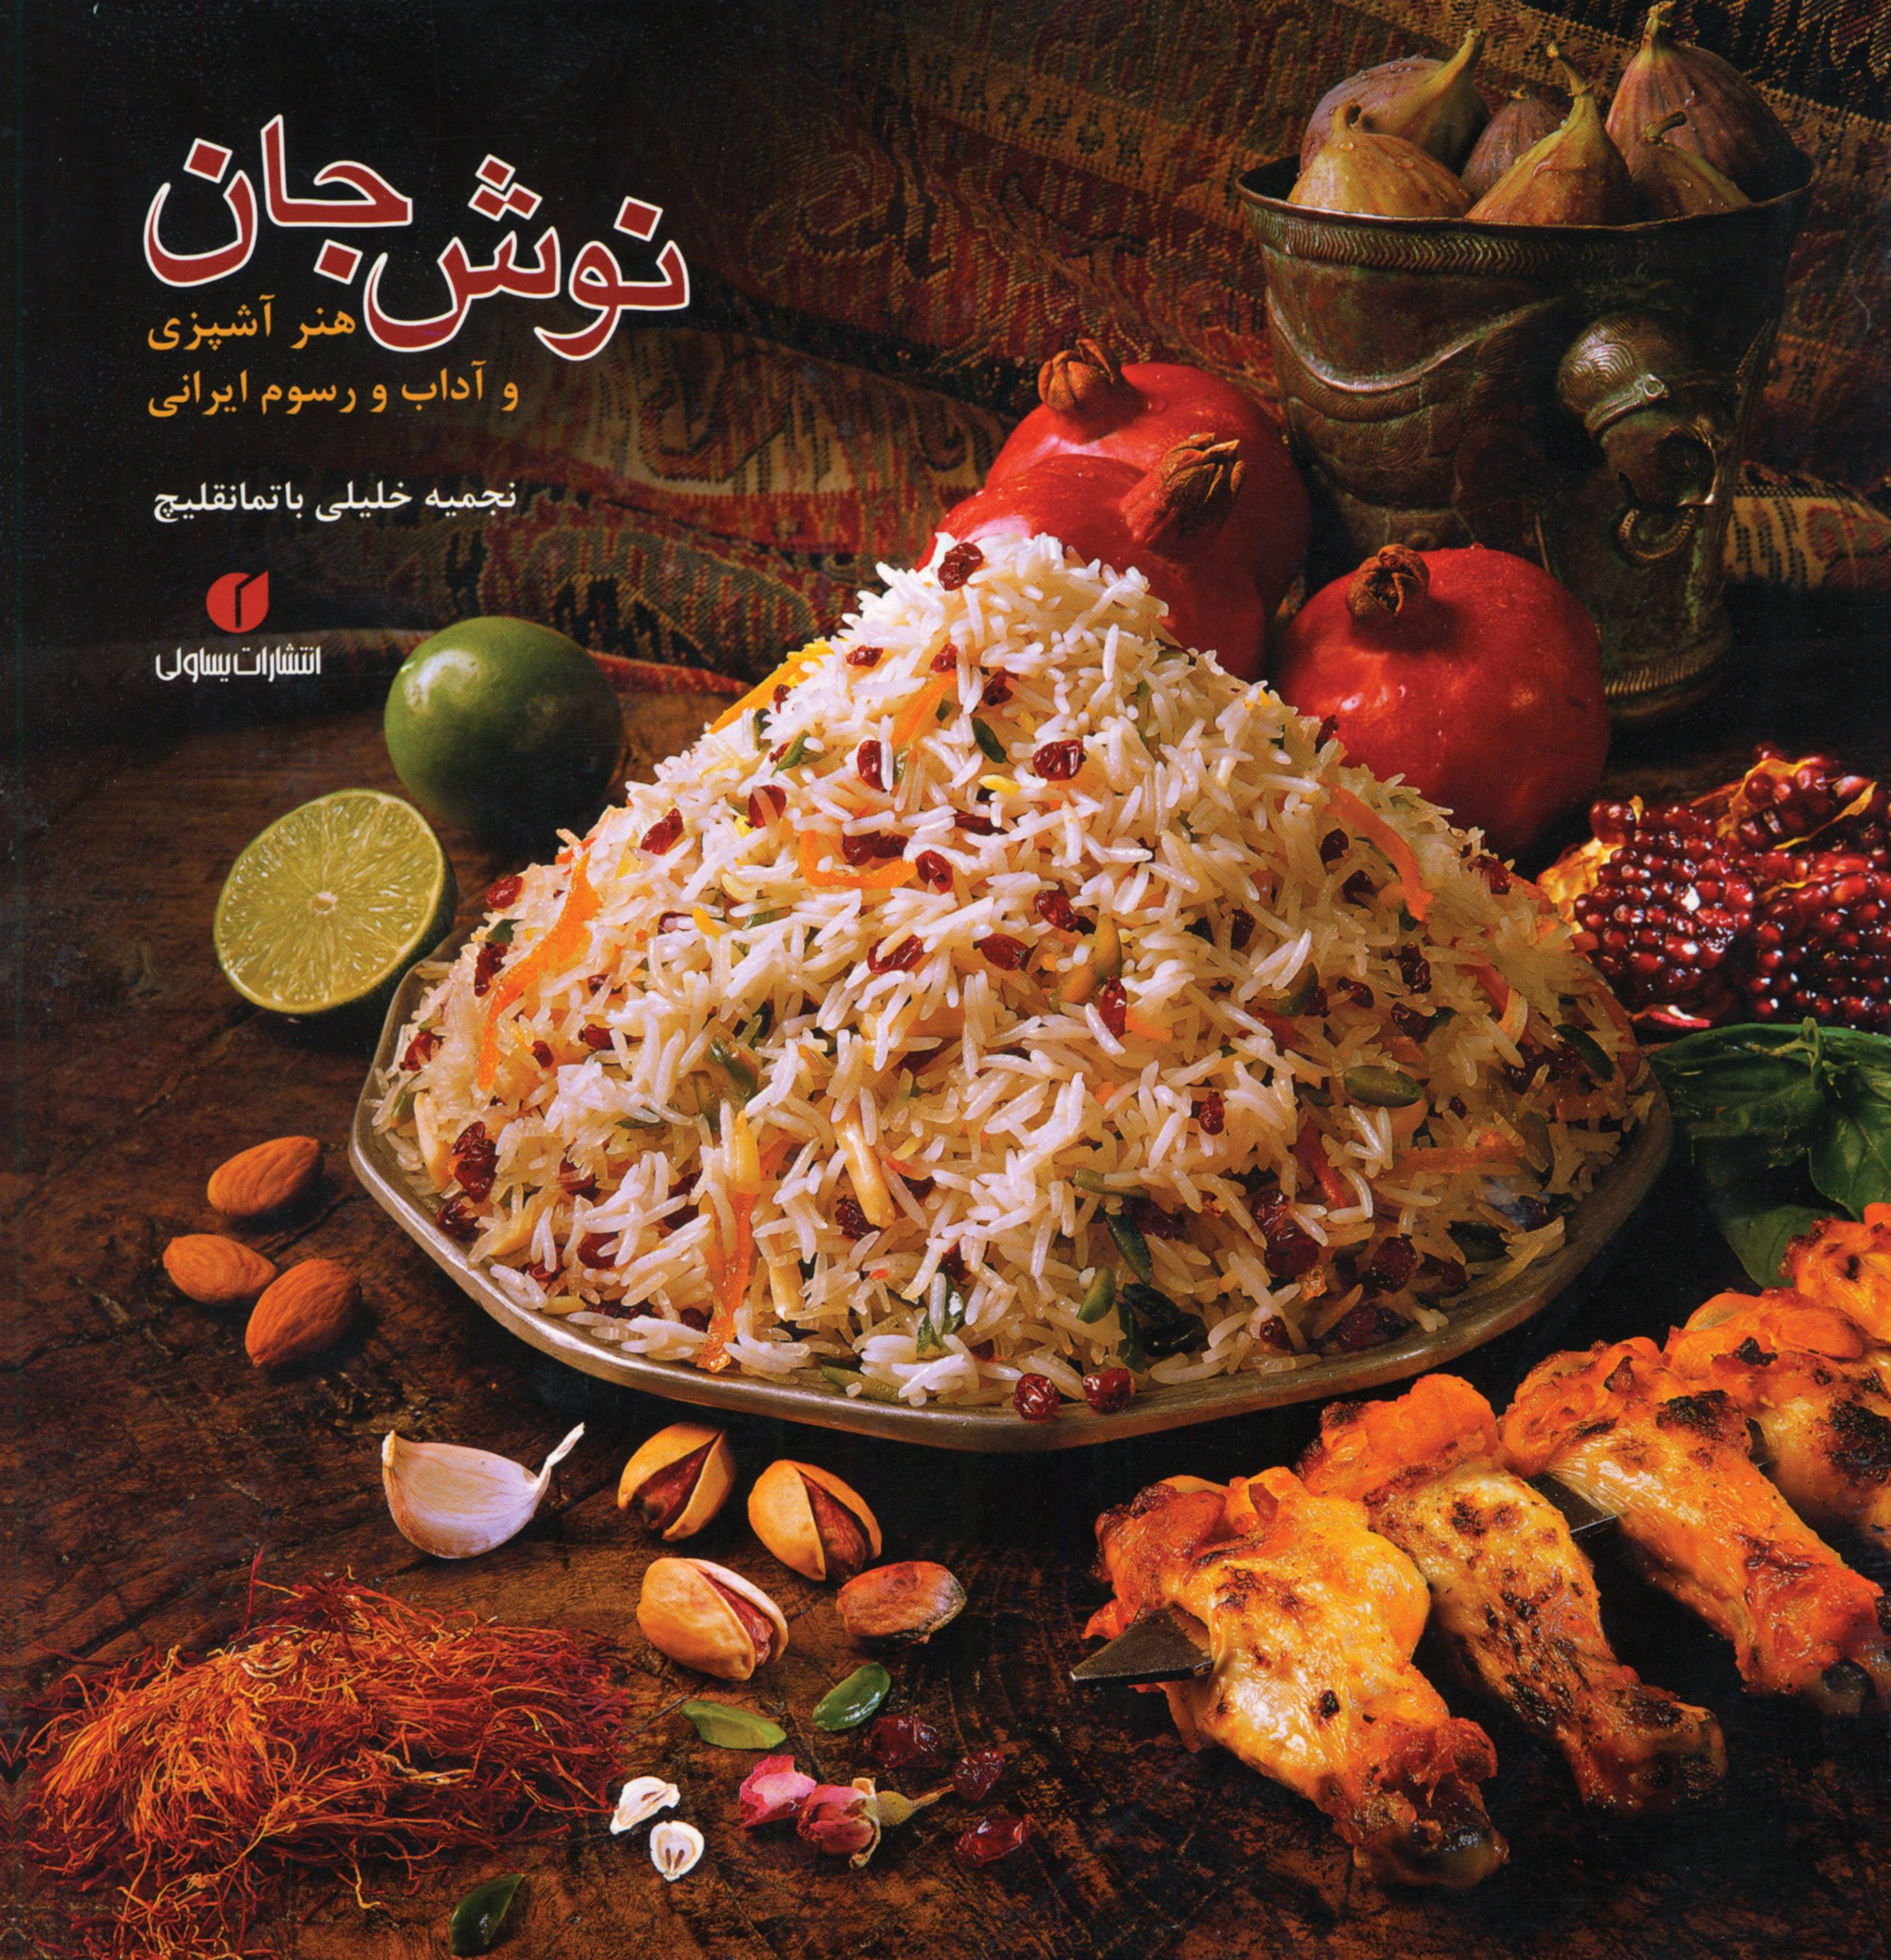 Nush-e Jan, Persian Language Edition of New Food of Life (Persian Edition) by Yassavoli/Mage